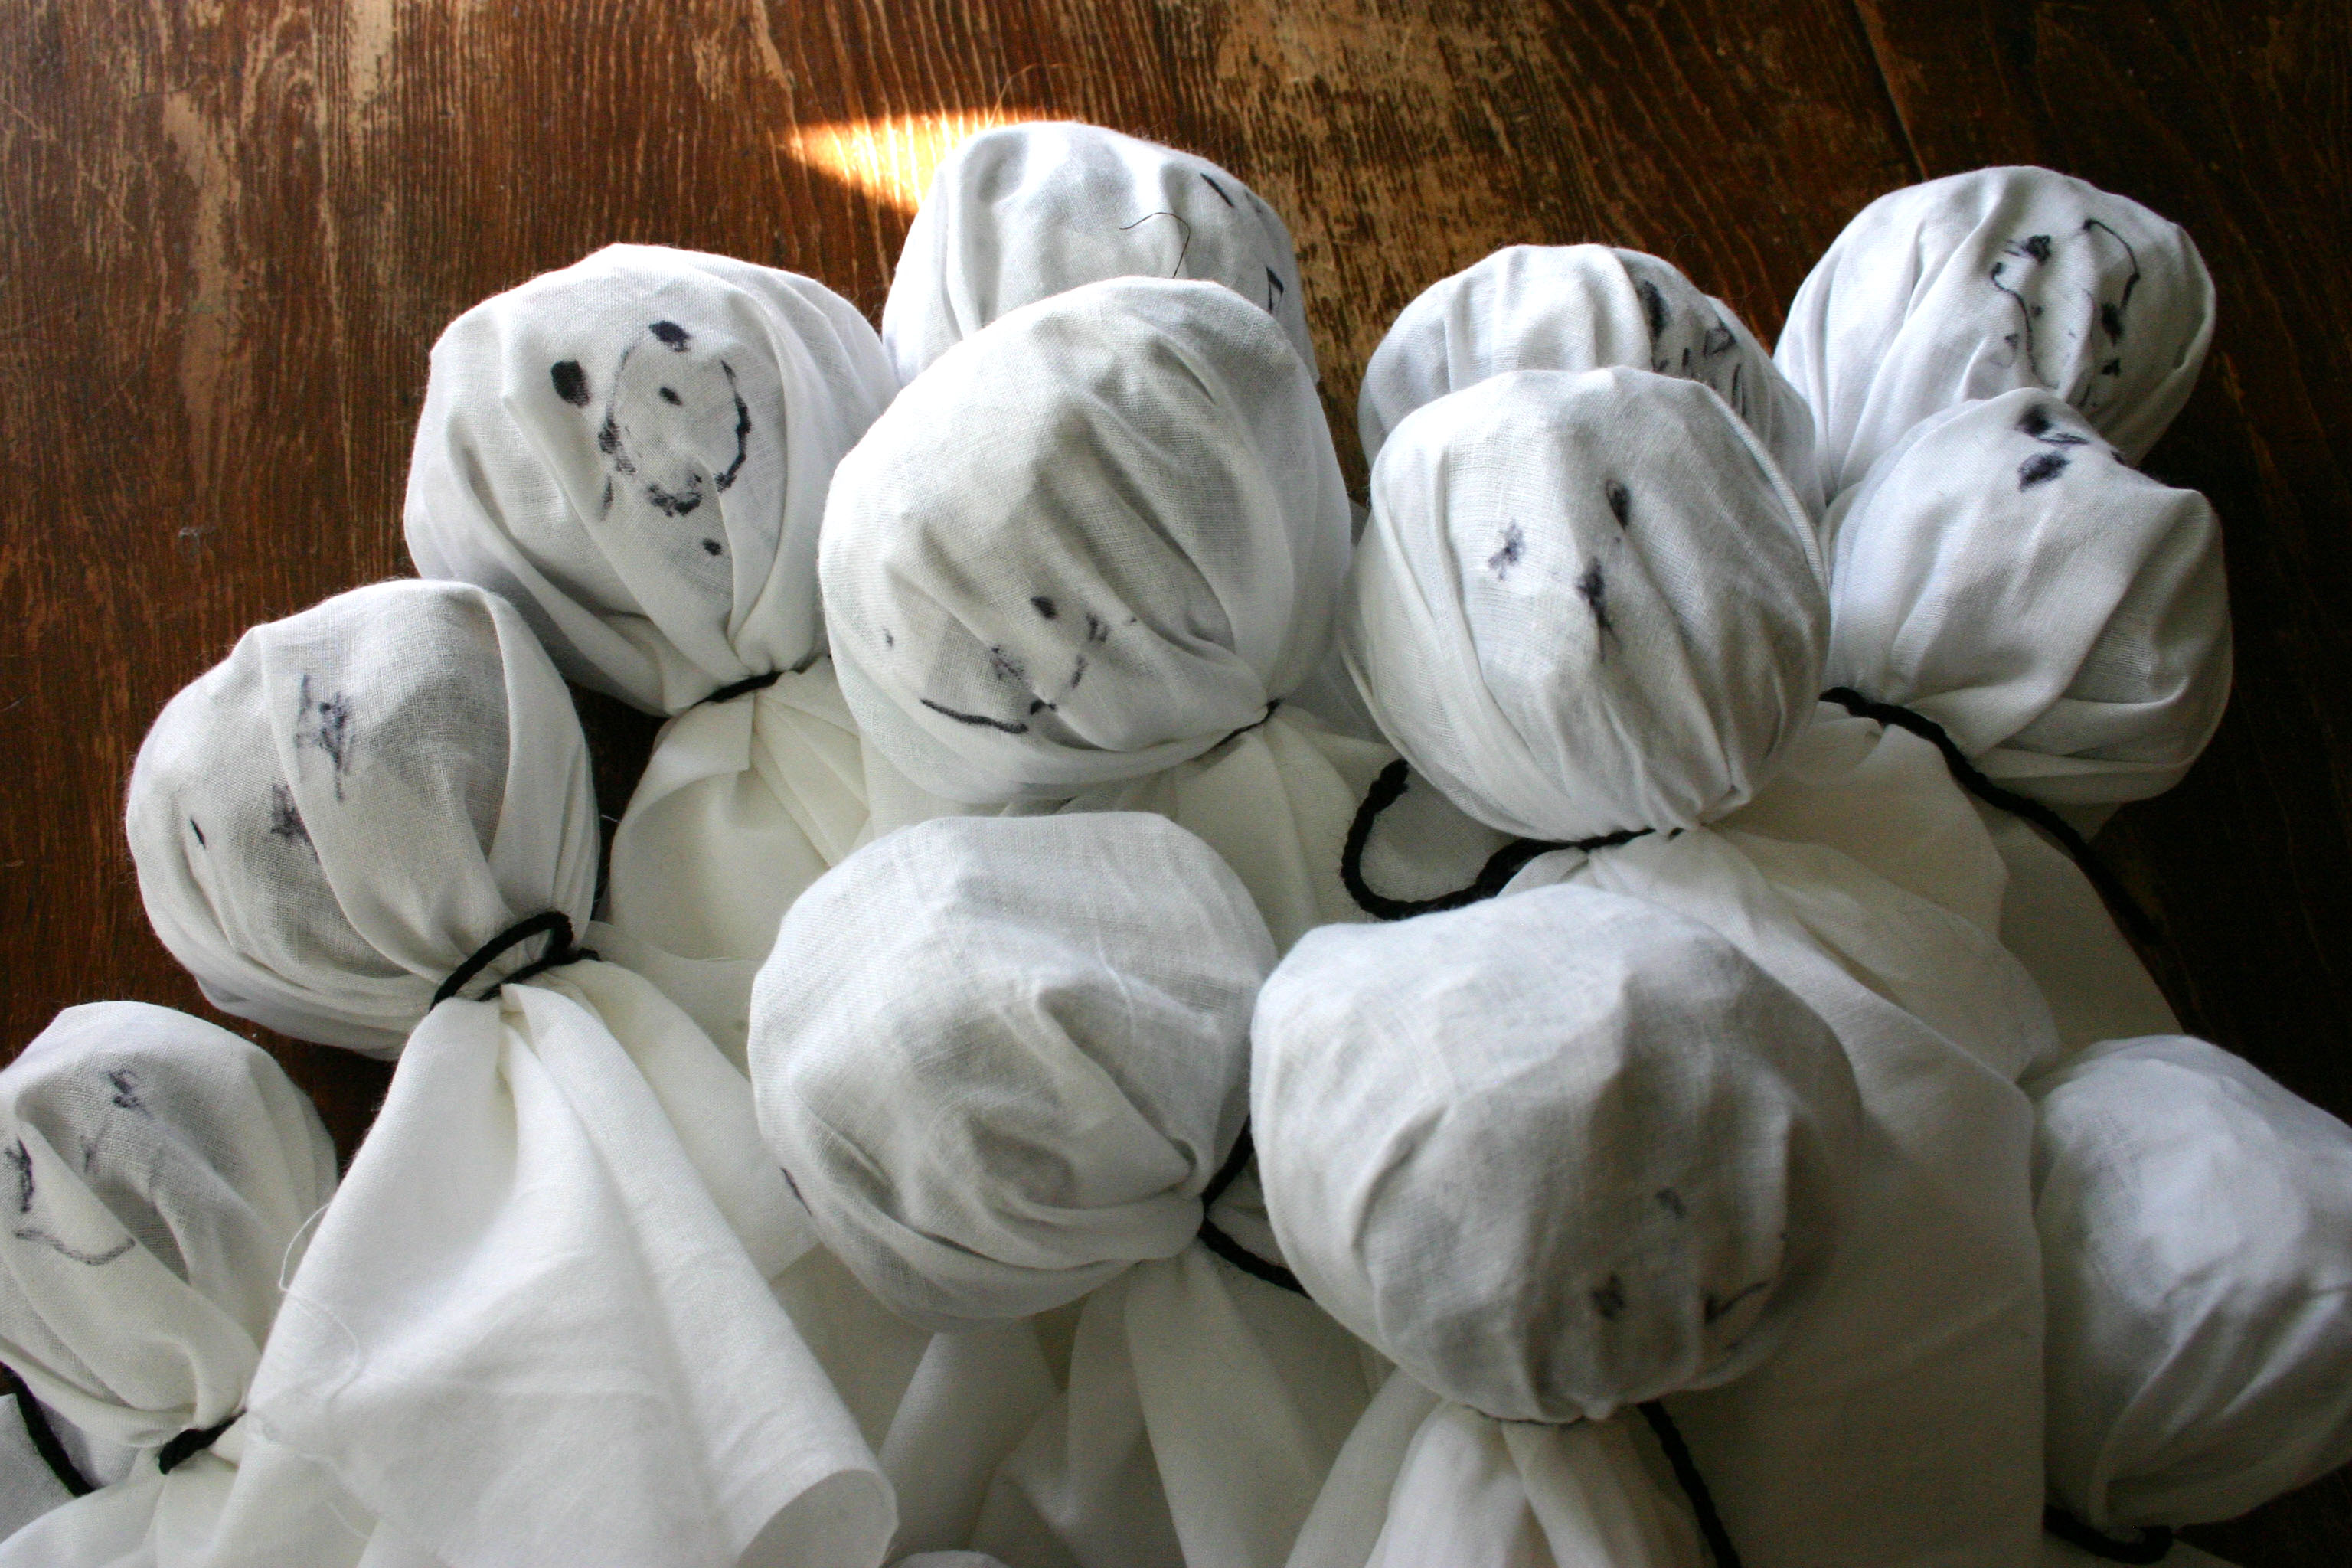 Cheap and Easy Ways to Decorate Your Home for Halloween